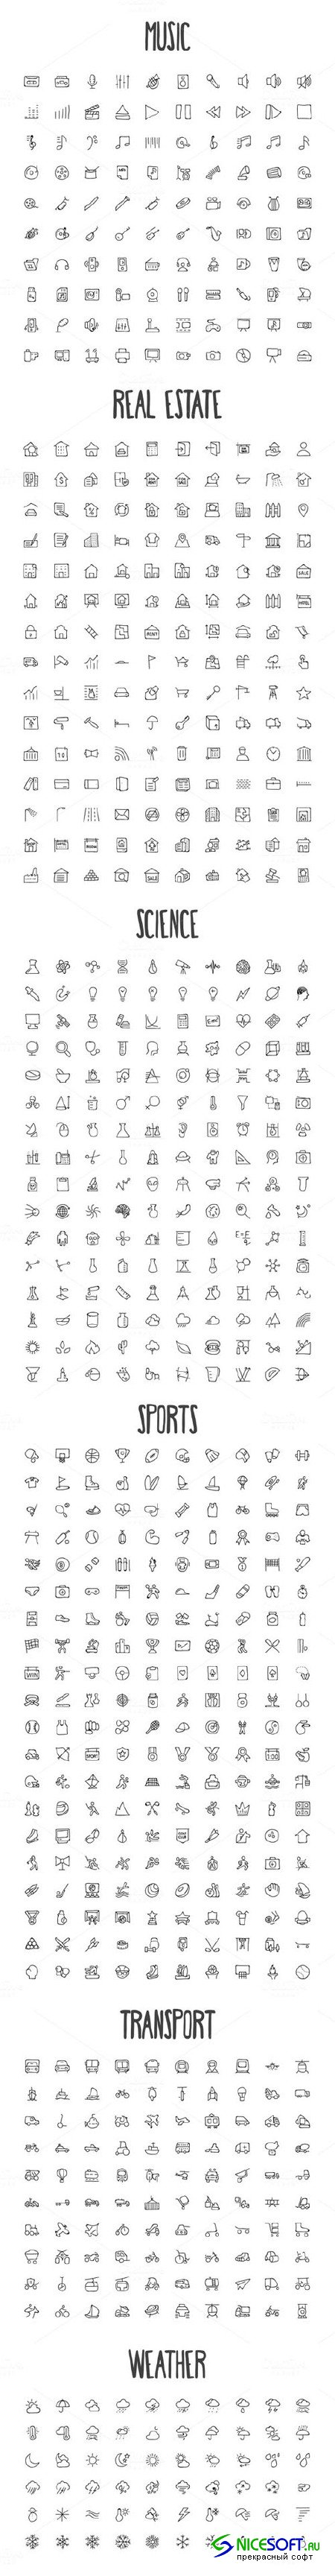 2440 Hand Drawn Doodle Icons Bundle - Creativemarket 167023